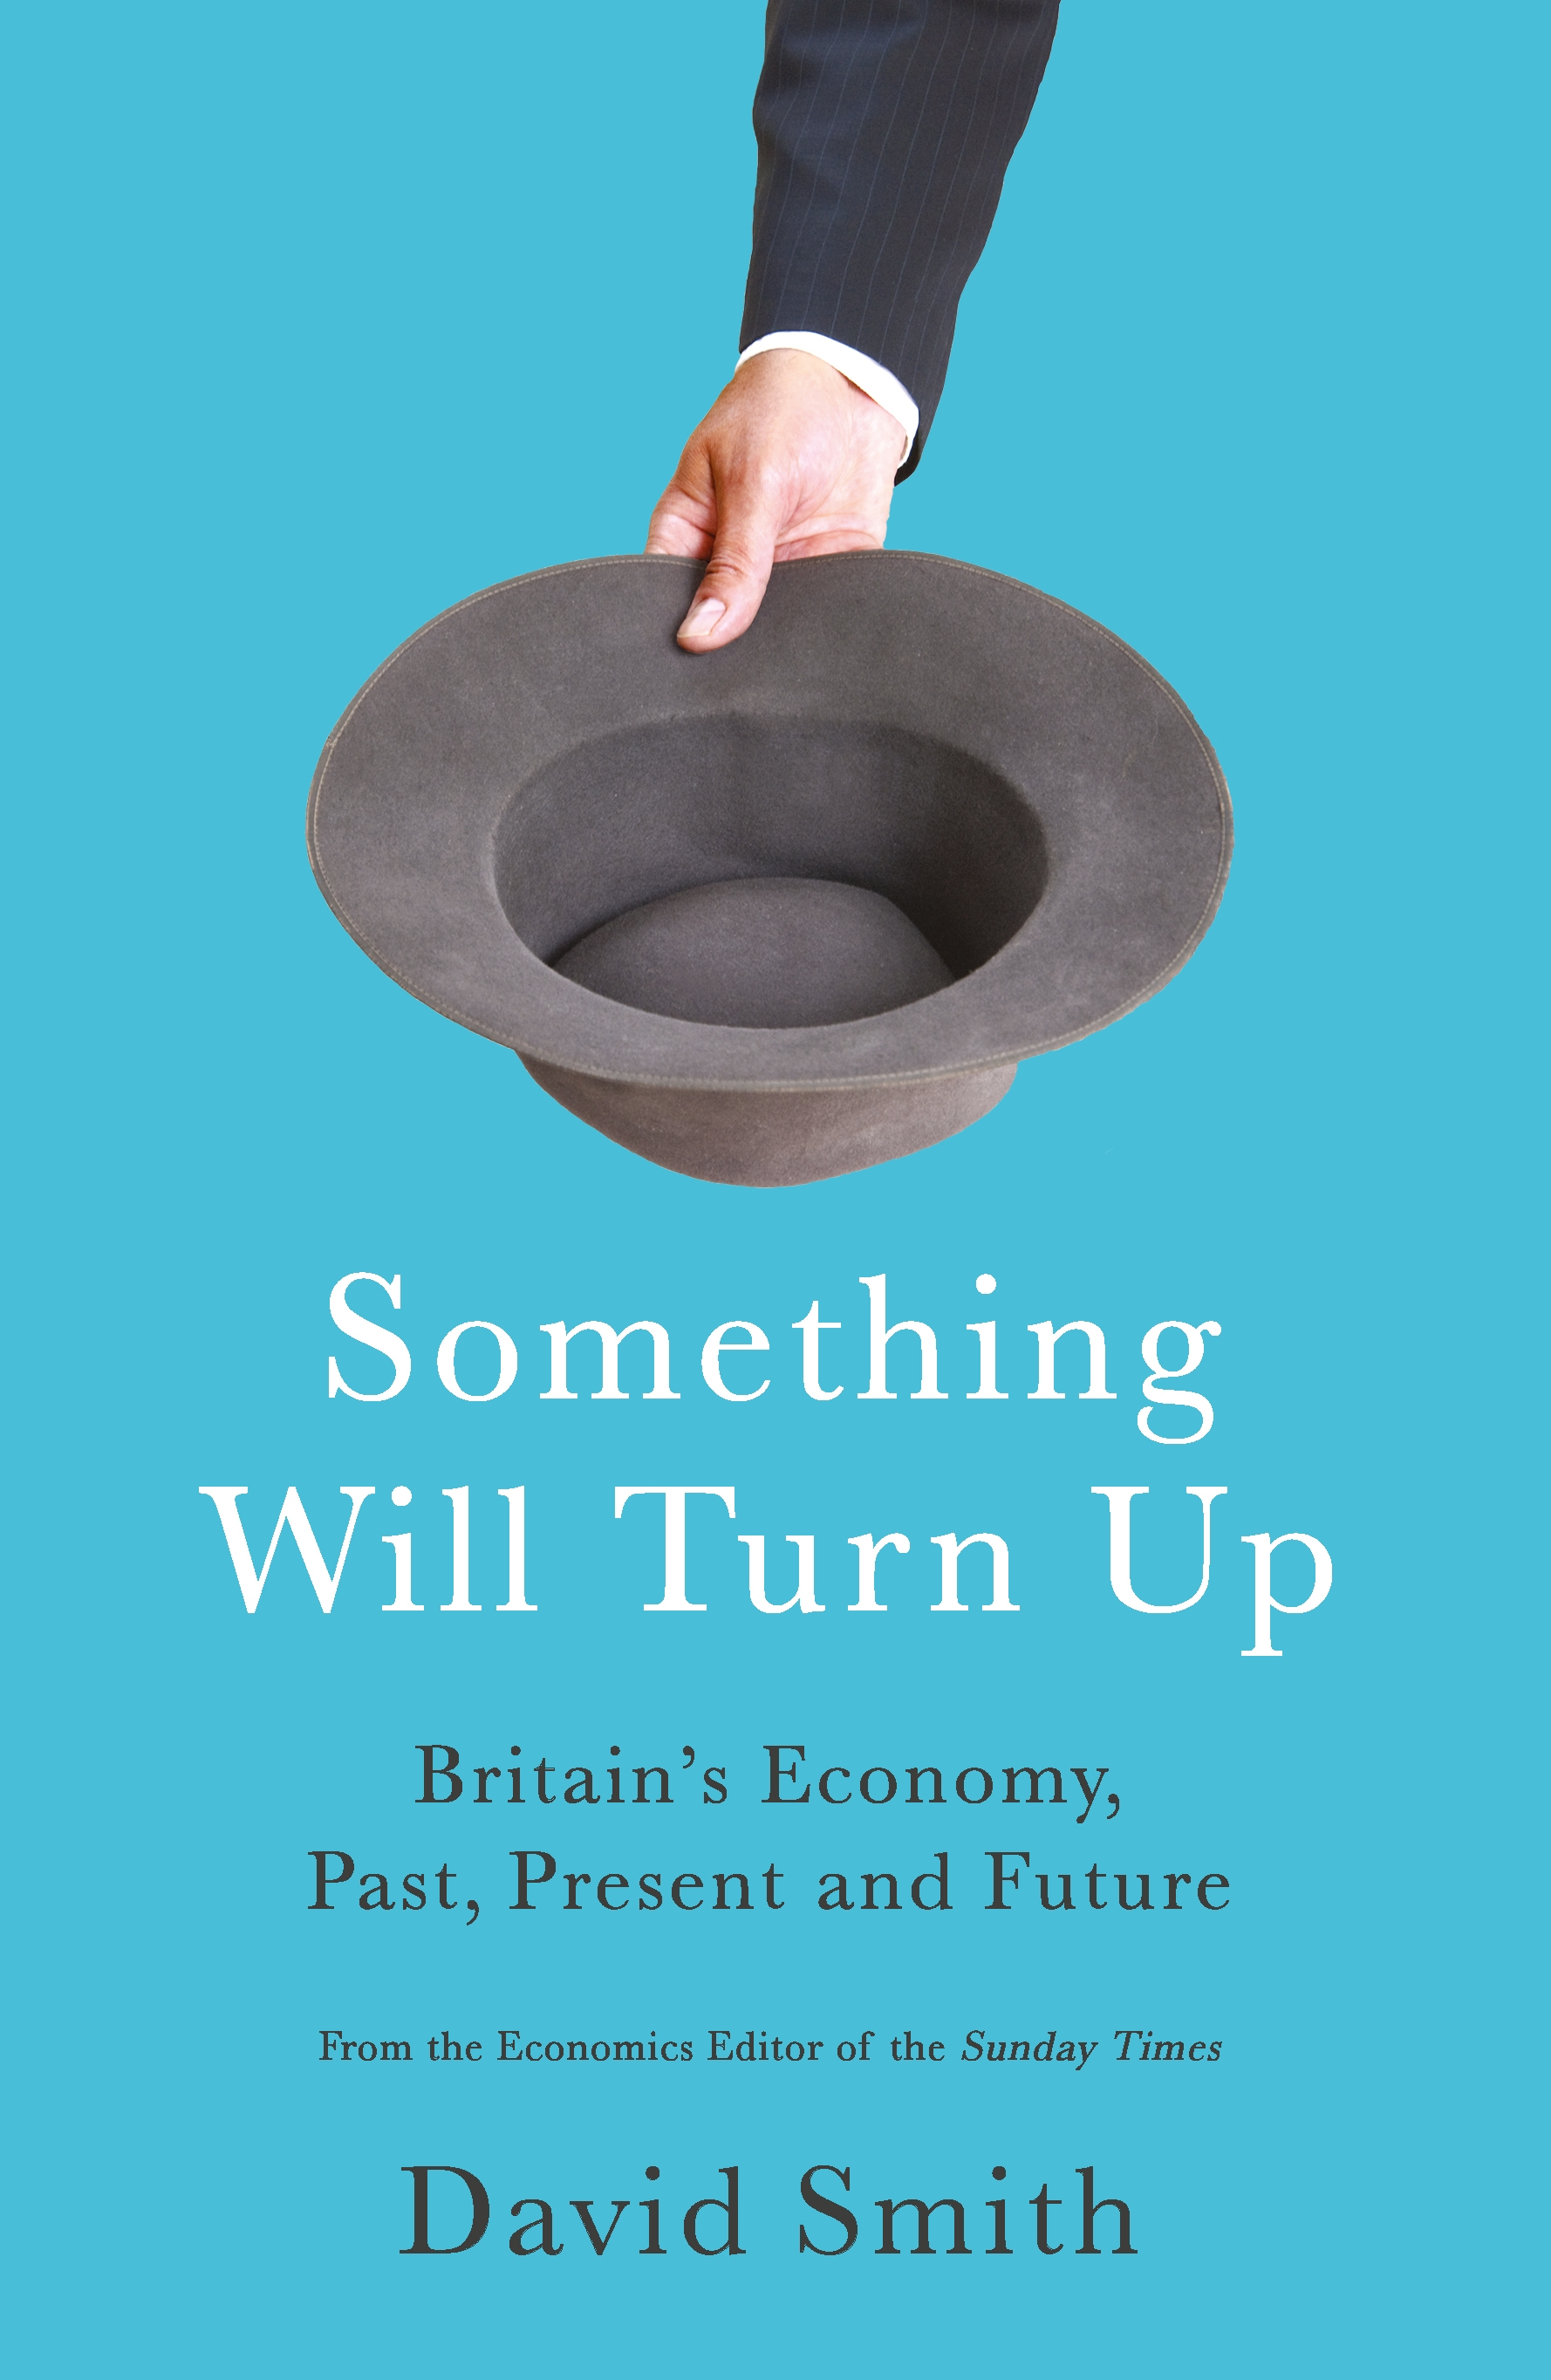 Download Ebook Something Will Turn Up by David Smith Pdf